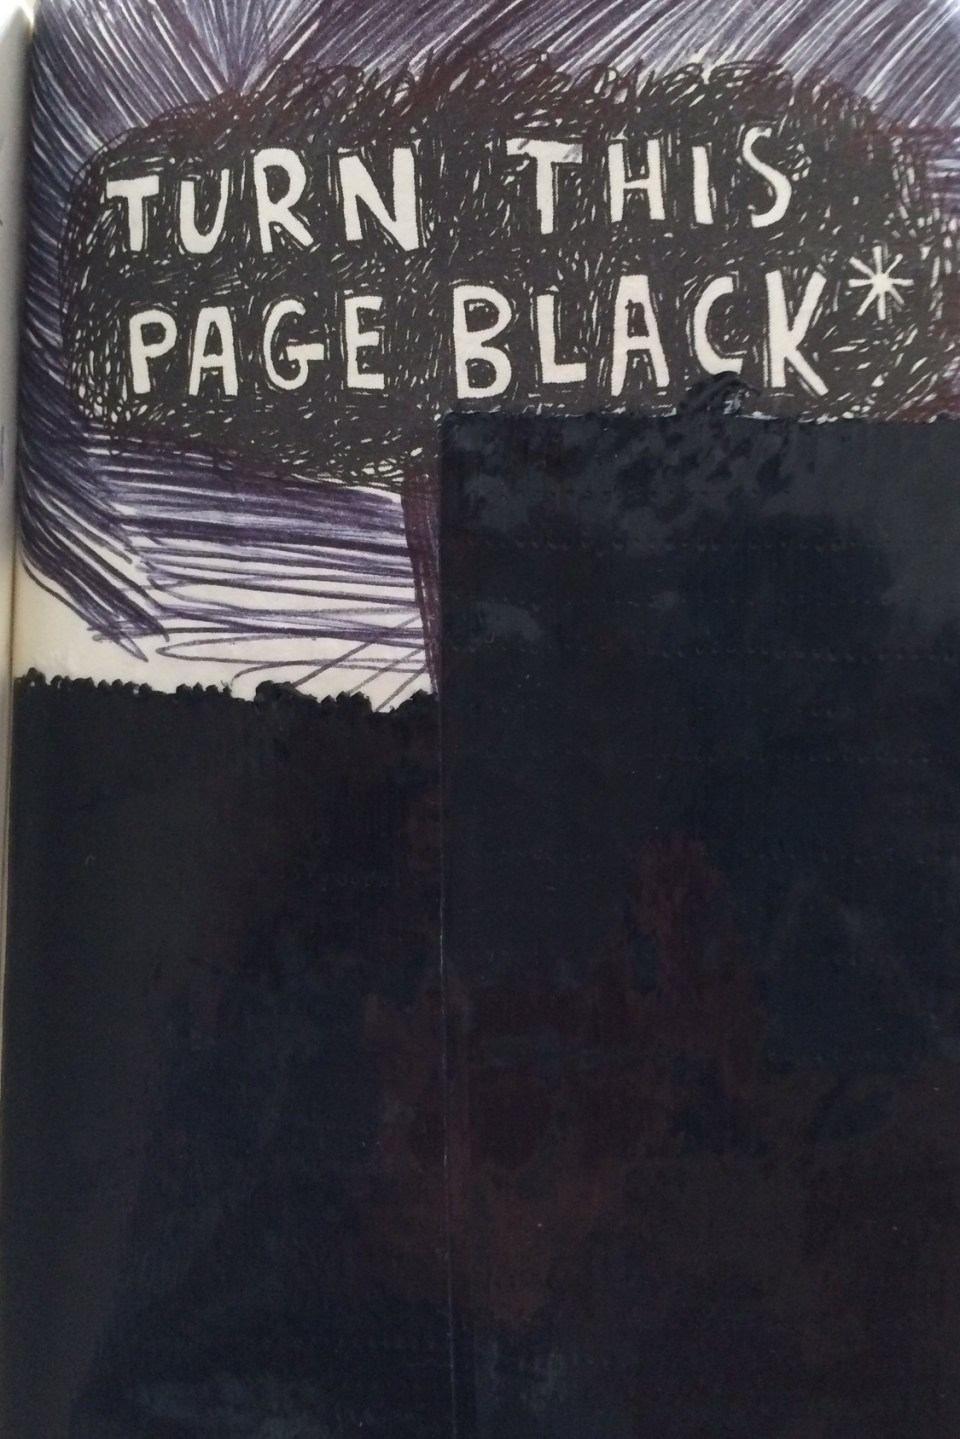 Turn this page black (using items found in the world).